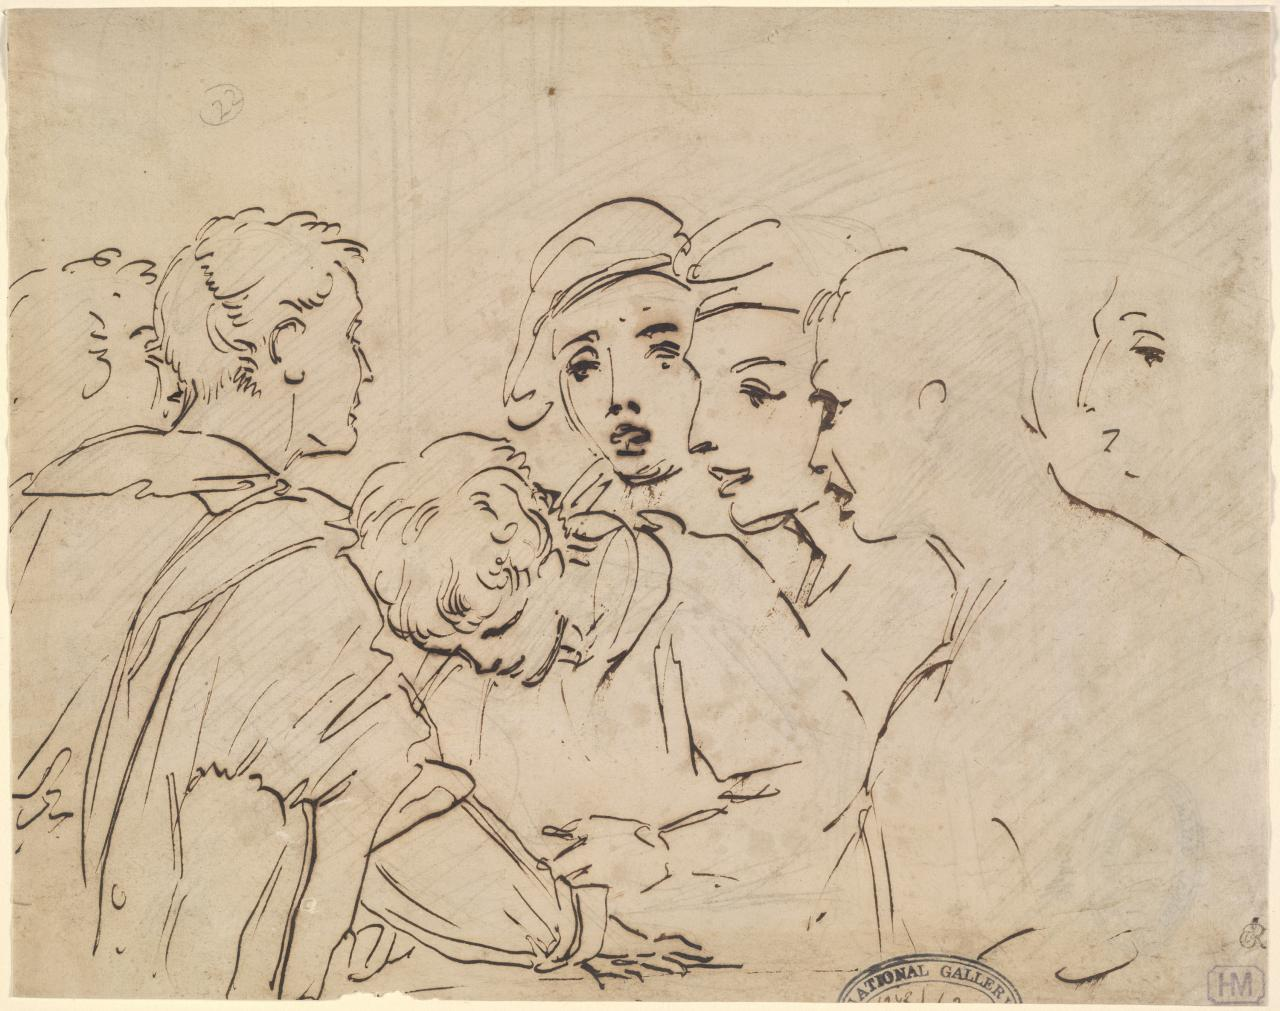 Sketch of boys playing cards